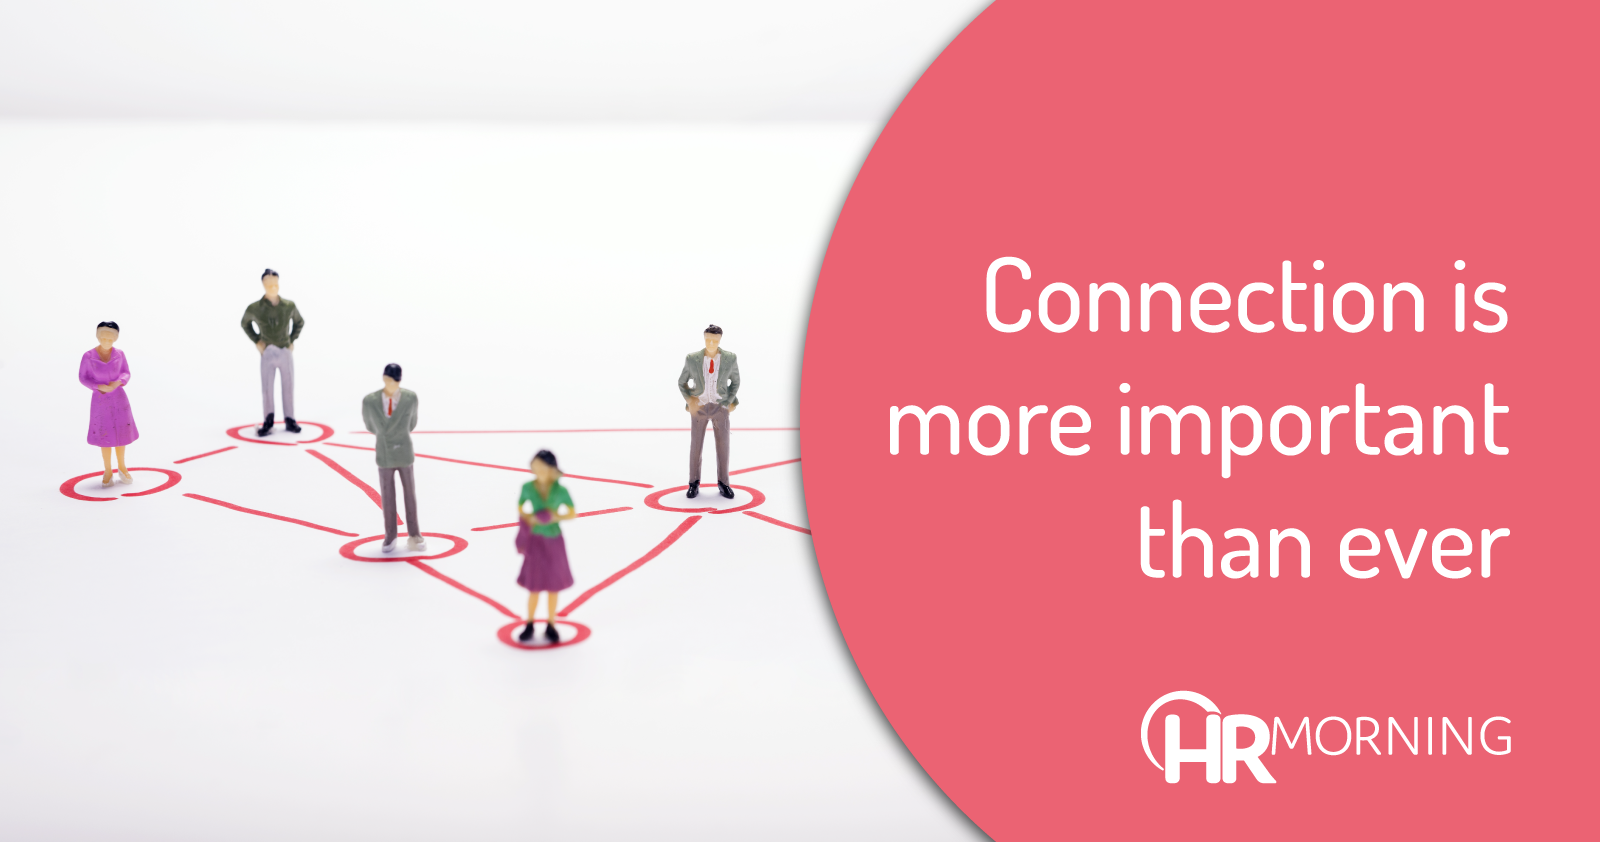 connection is more important than ever